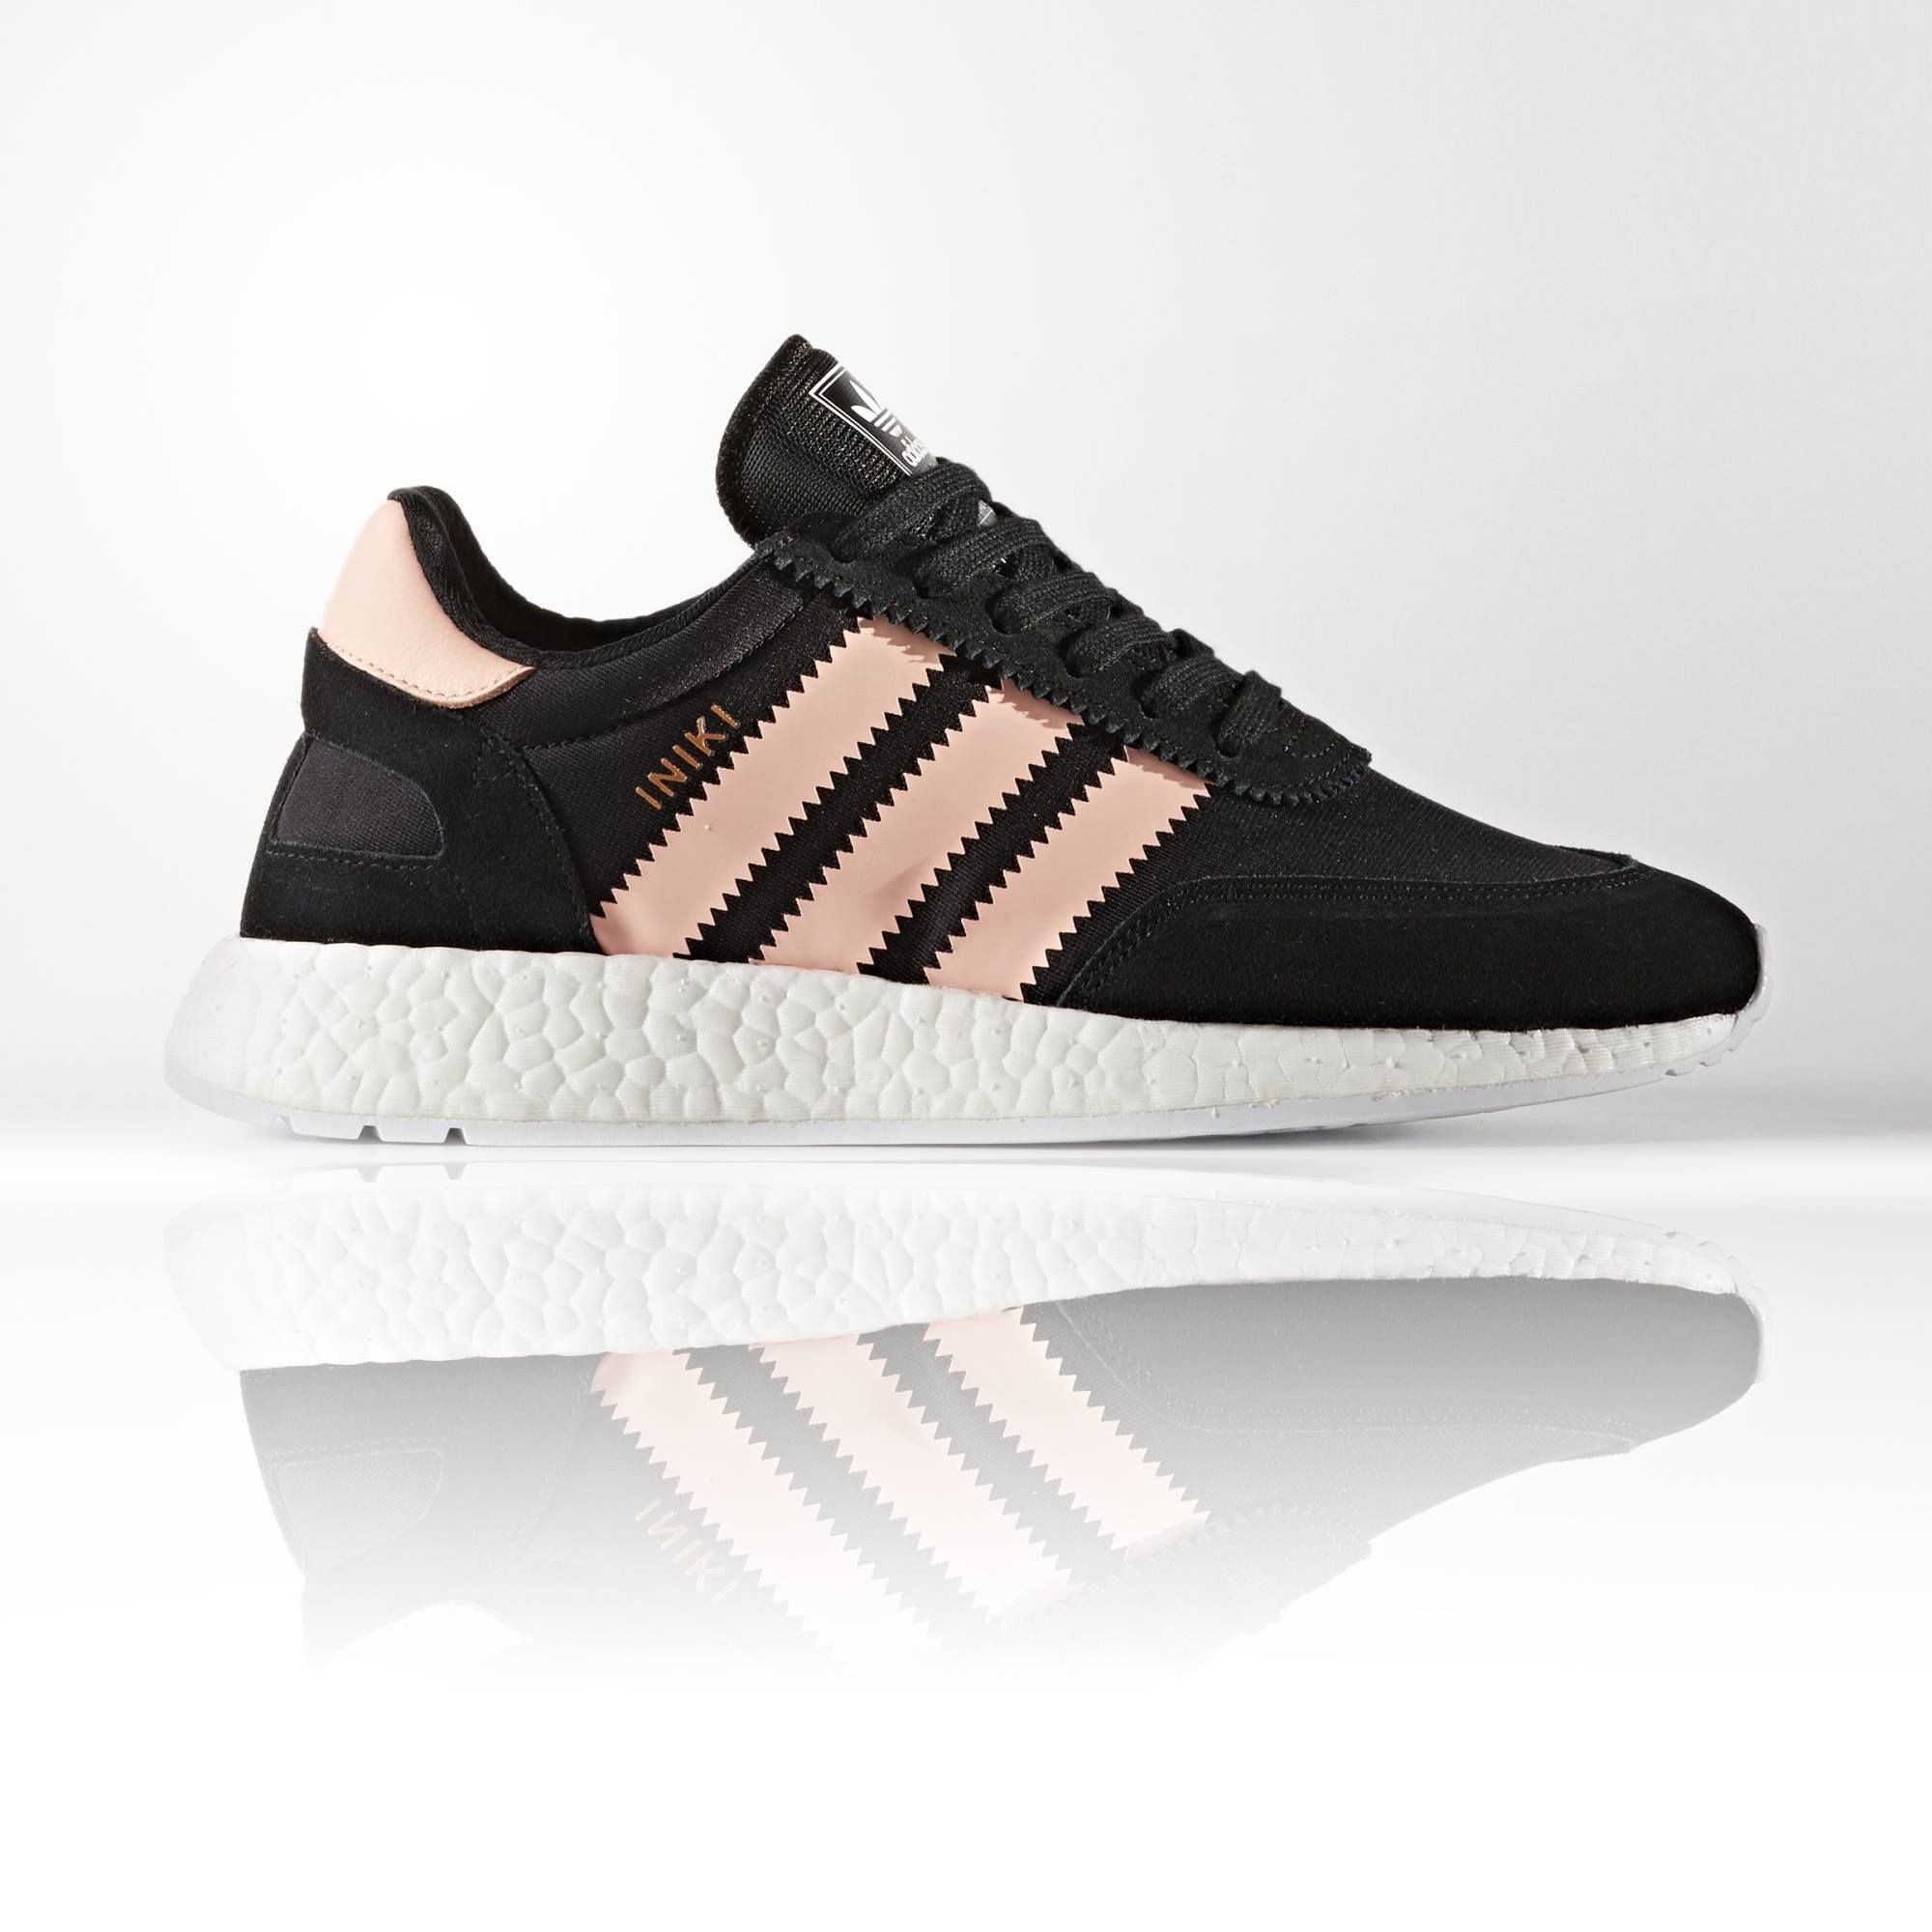 ADIDAS INIKI RUNNER SHOES  28cb89f6388